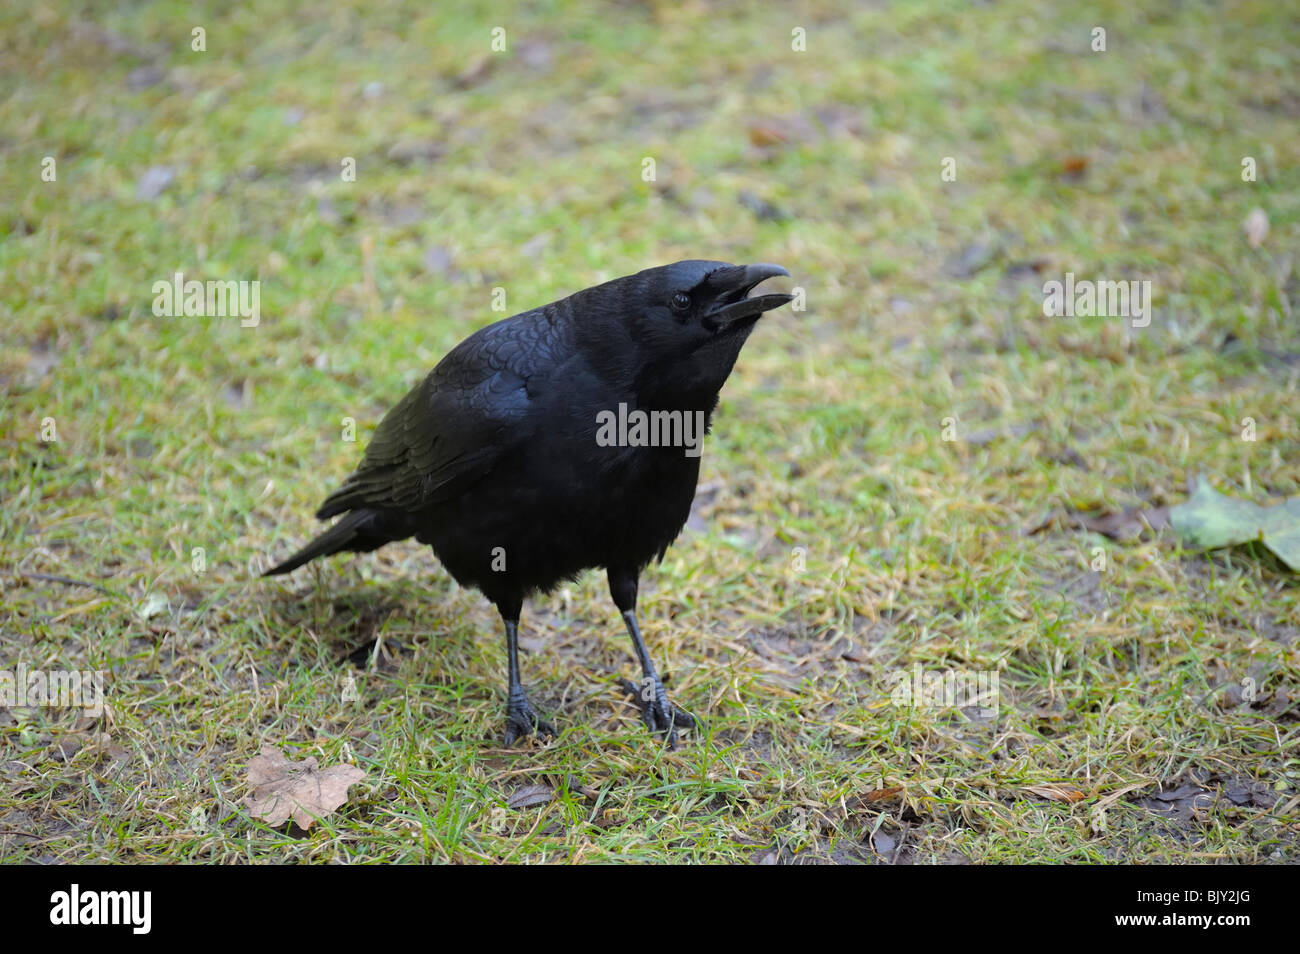 Carrion crow resting on green grass field - Stock Image